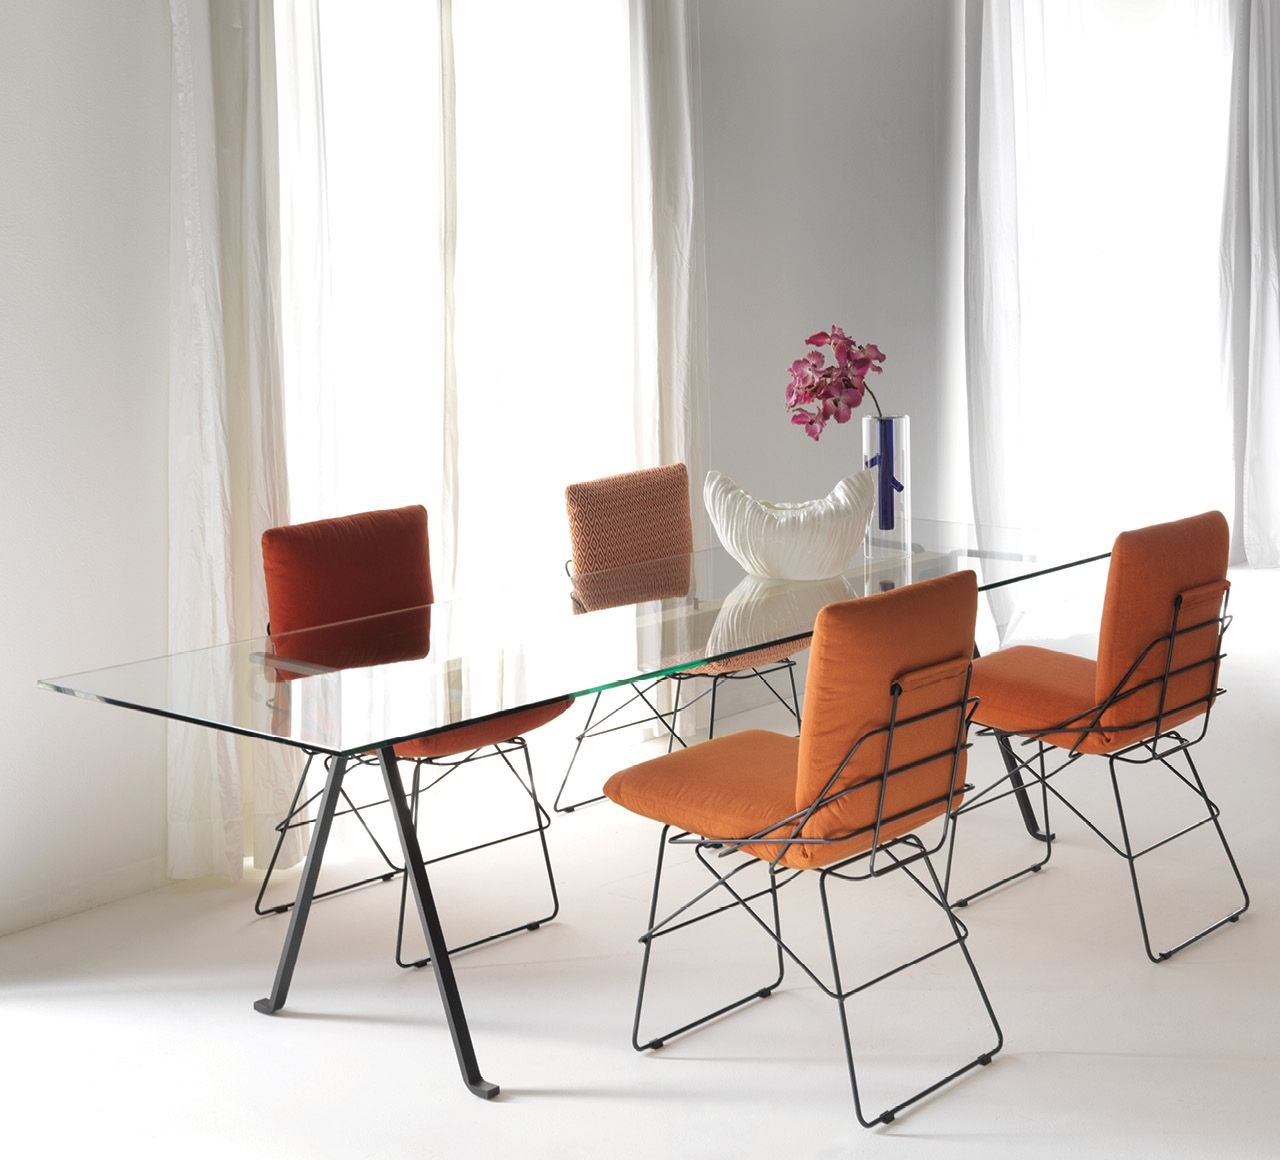 Sof Sof Chair - This chair has harmonious lines that convey the essential elegance of the design by Enzo Mari. Made by Driade in 1972, and redone in 2015, Sof Sof is a timeless icon. The structure is almost a sculpture, made up of nine steel rod rings that simultaneously define the top of the seat and the shape of the back  Indoor Use Only | Matter of Stuff